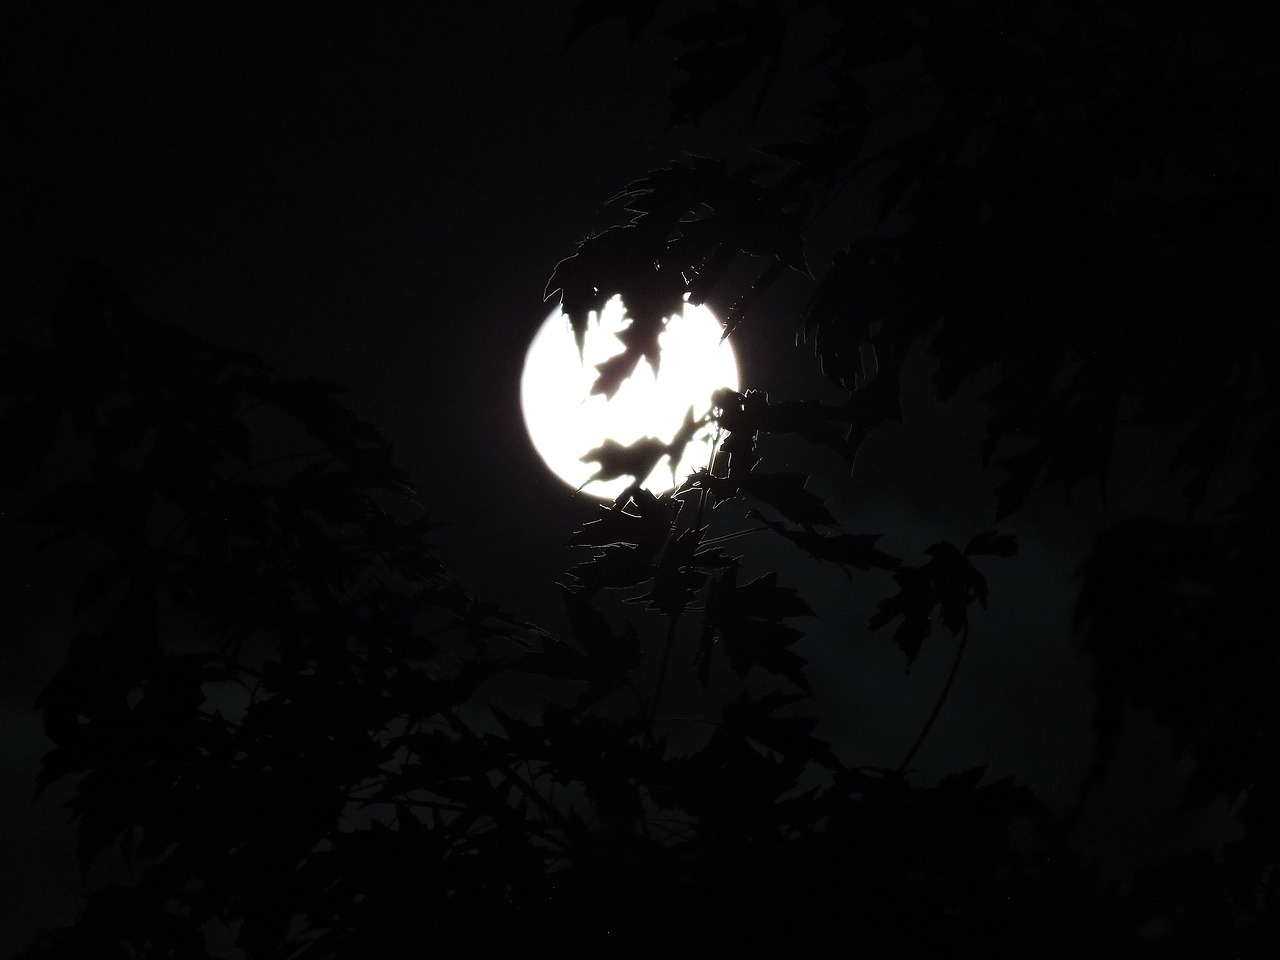 spooky moonlight through trees halloween free photo